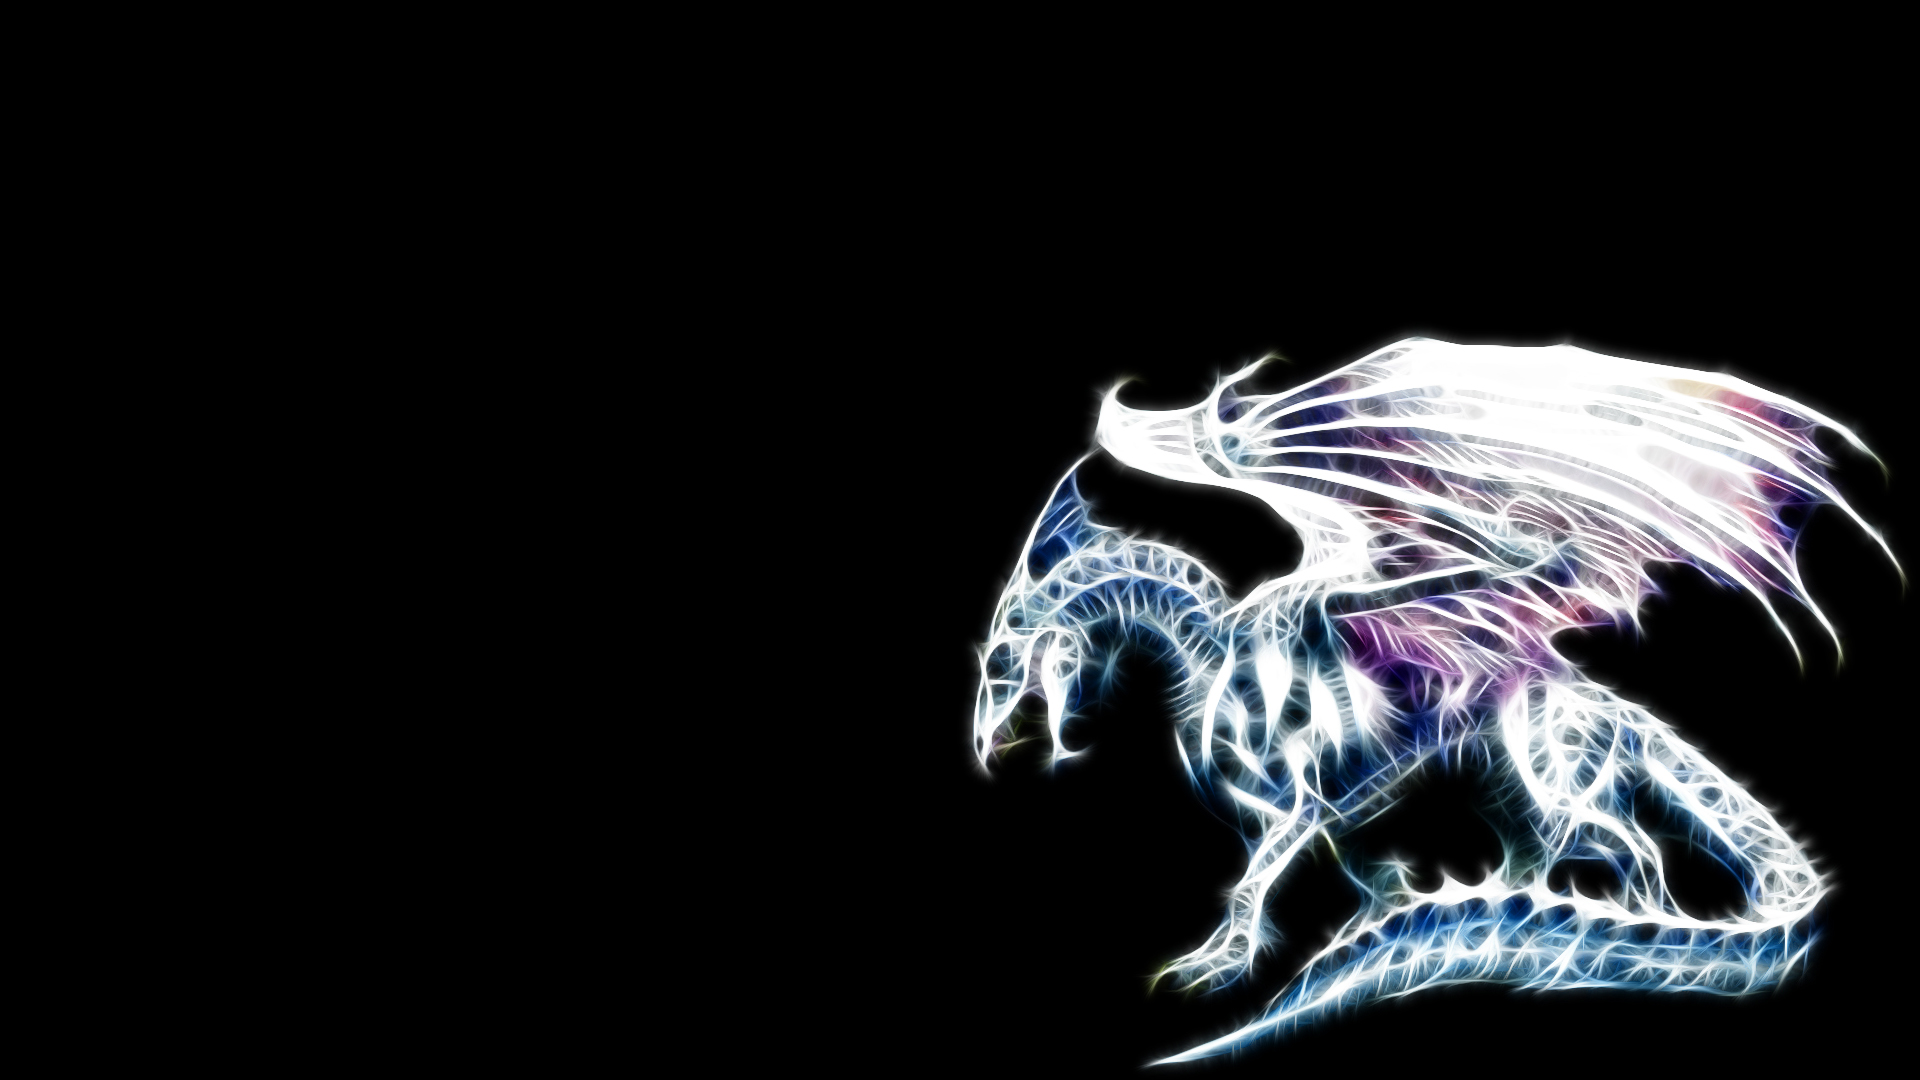 dragon wallpapers best wallpapers